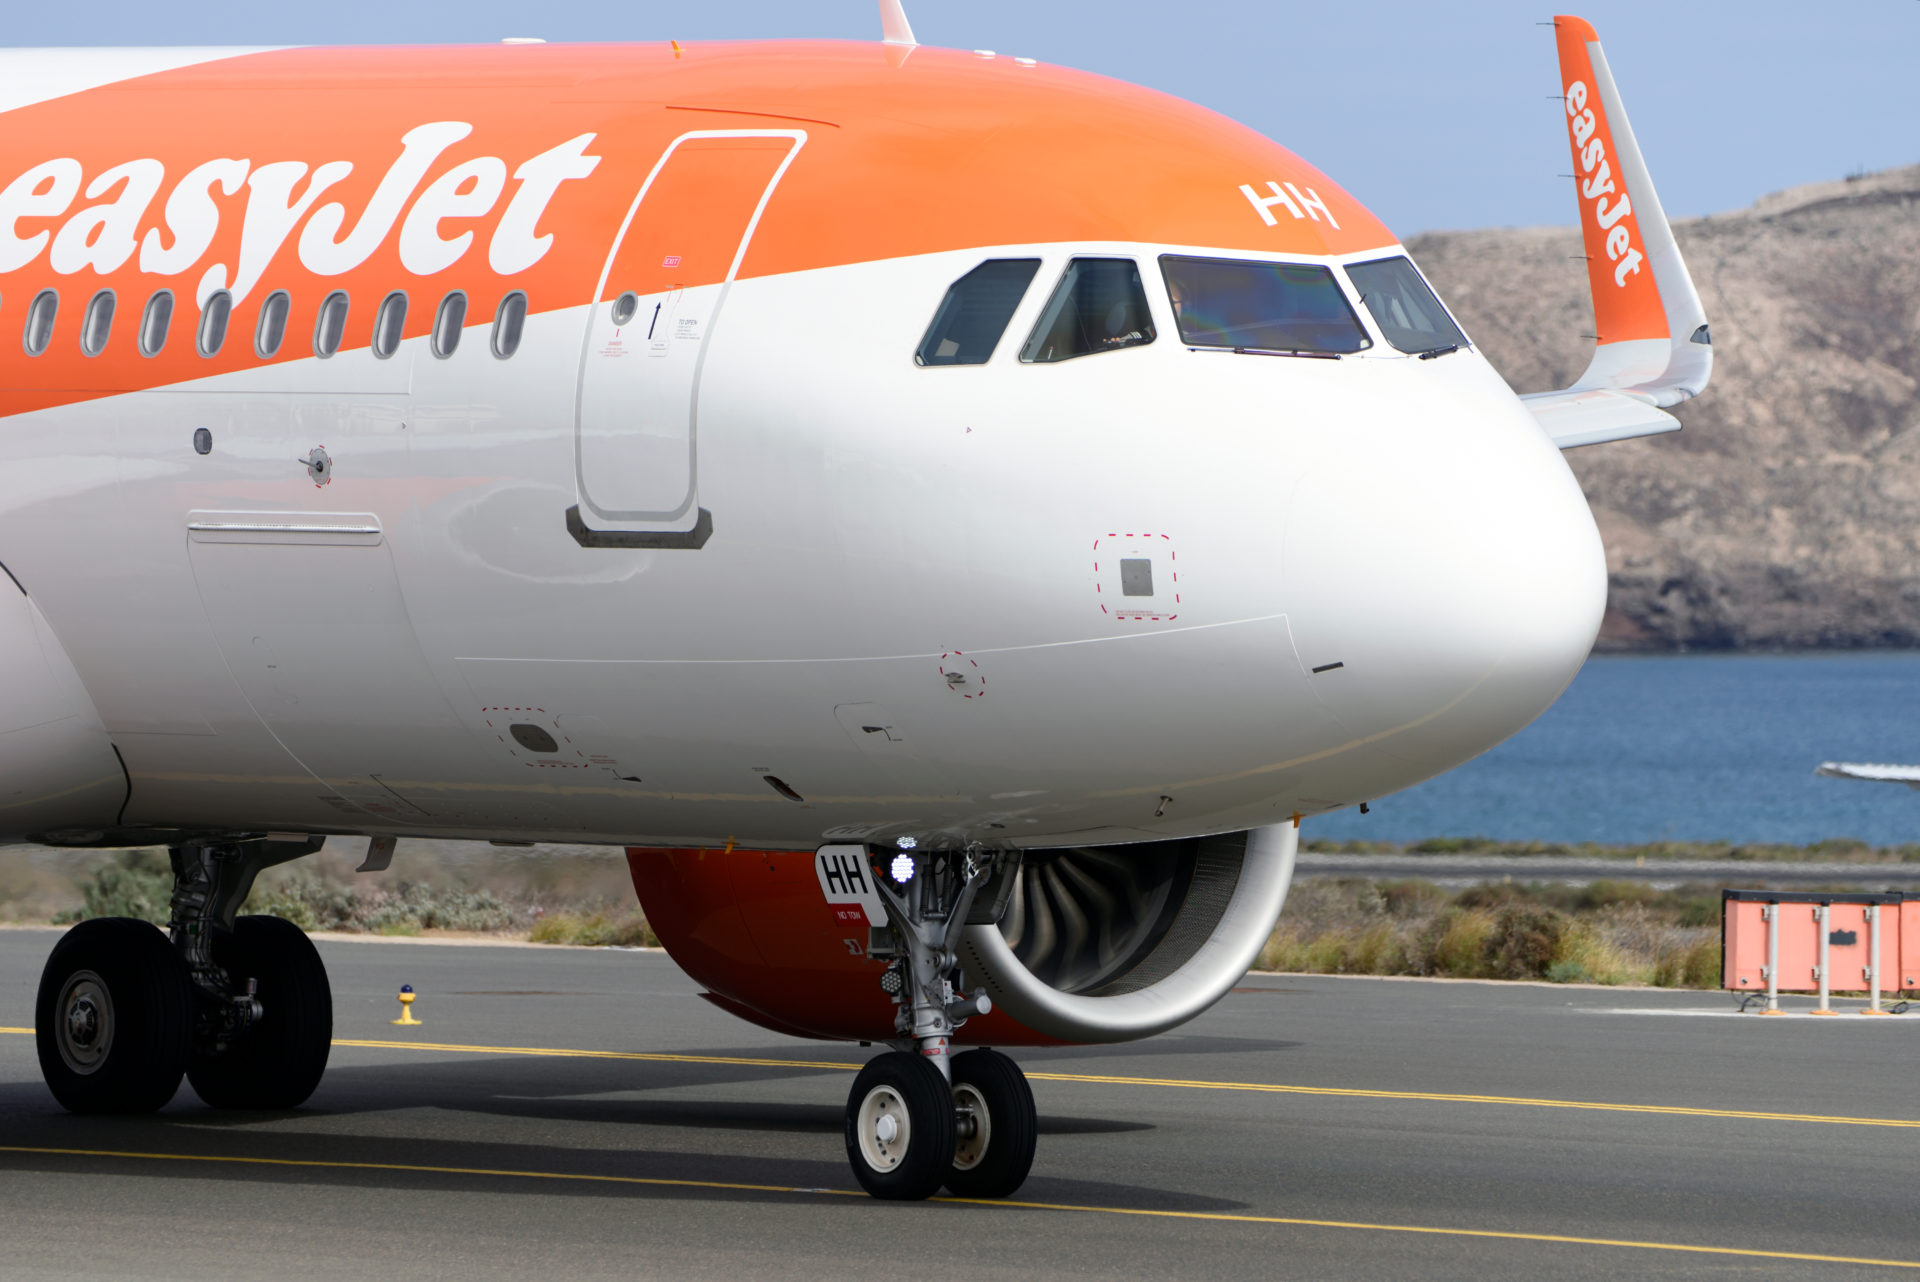 EasyJet arrives at Las Palmas, Spain